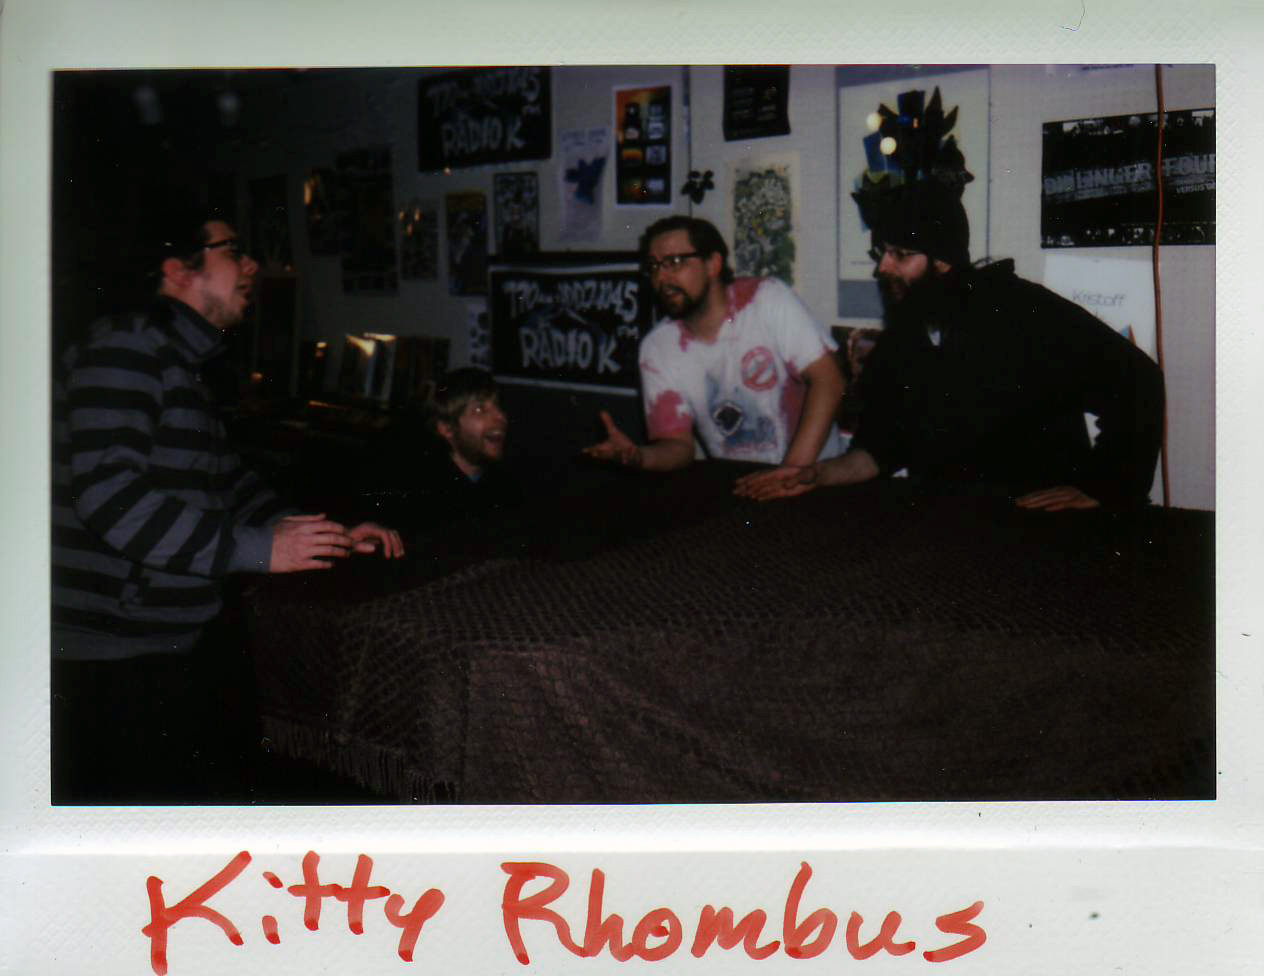 Kitty Rhombus